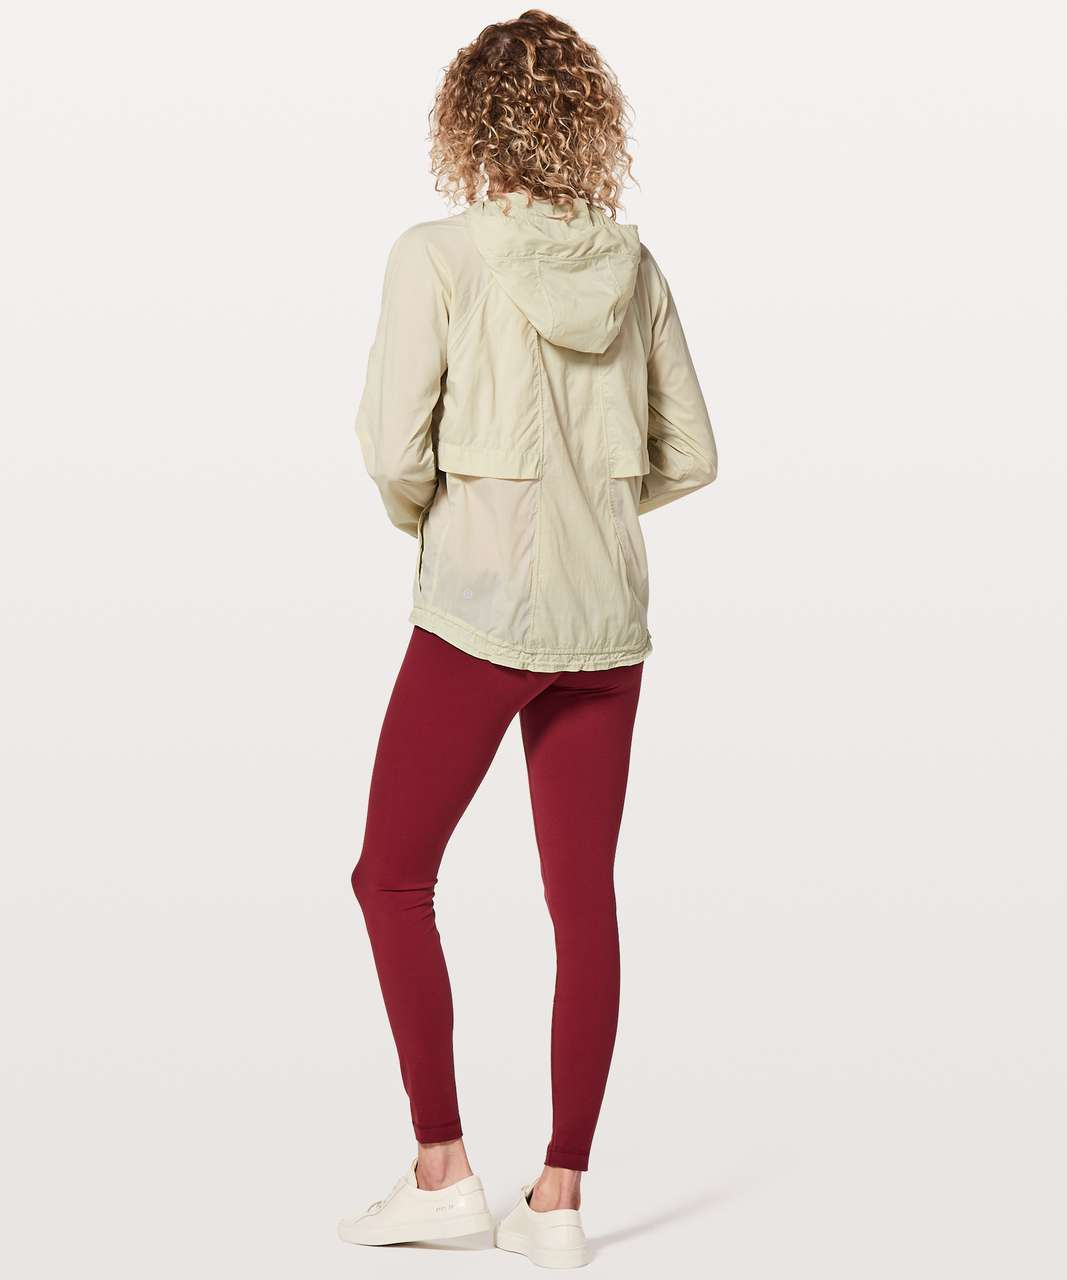 Lululemon Hood Lite Jacket - White Tan